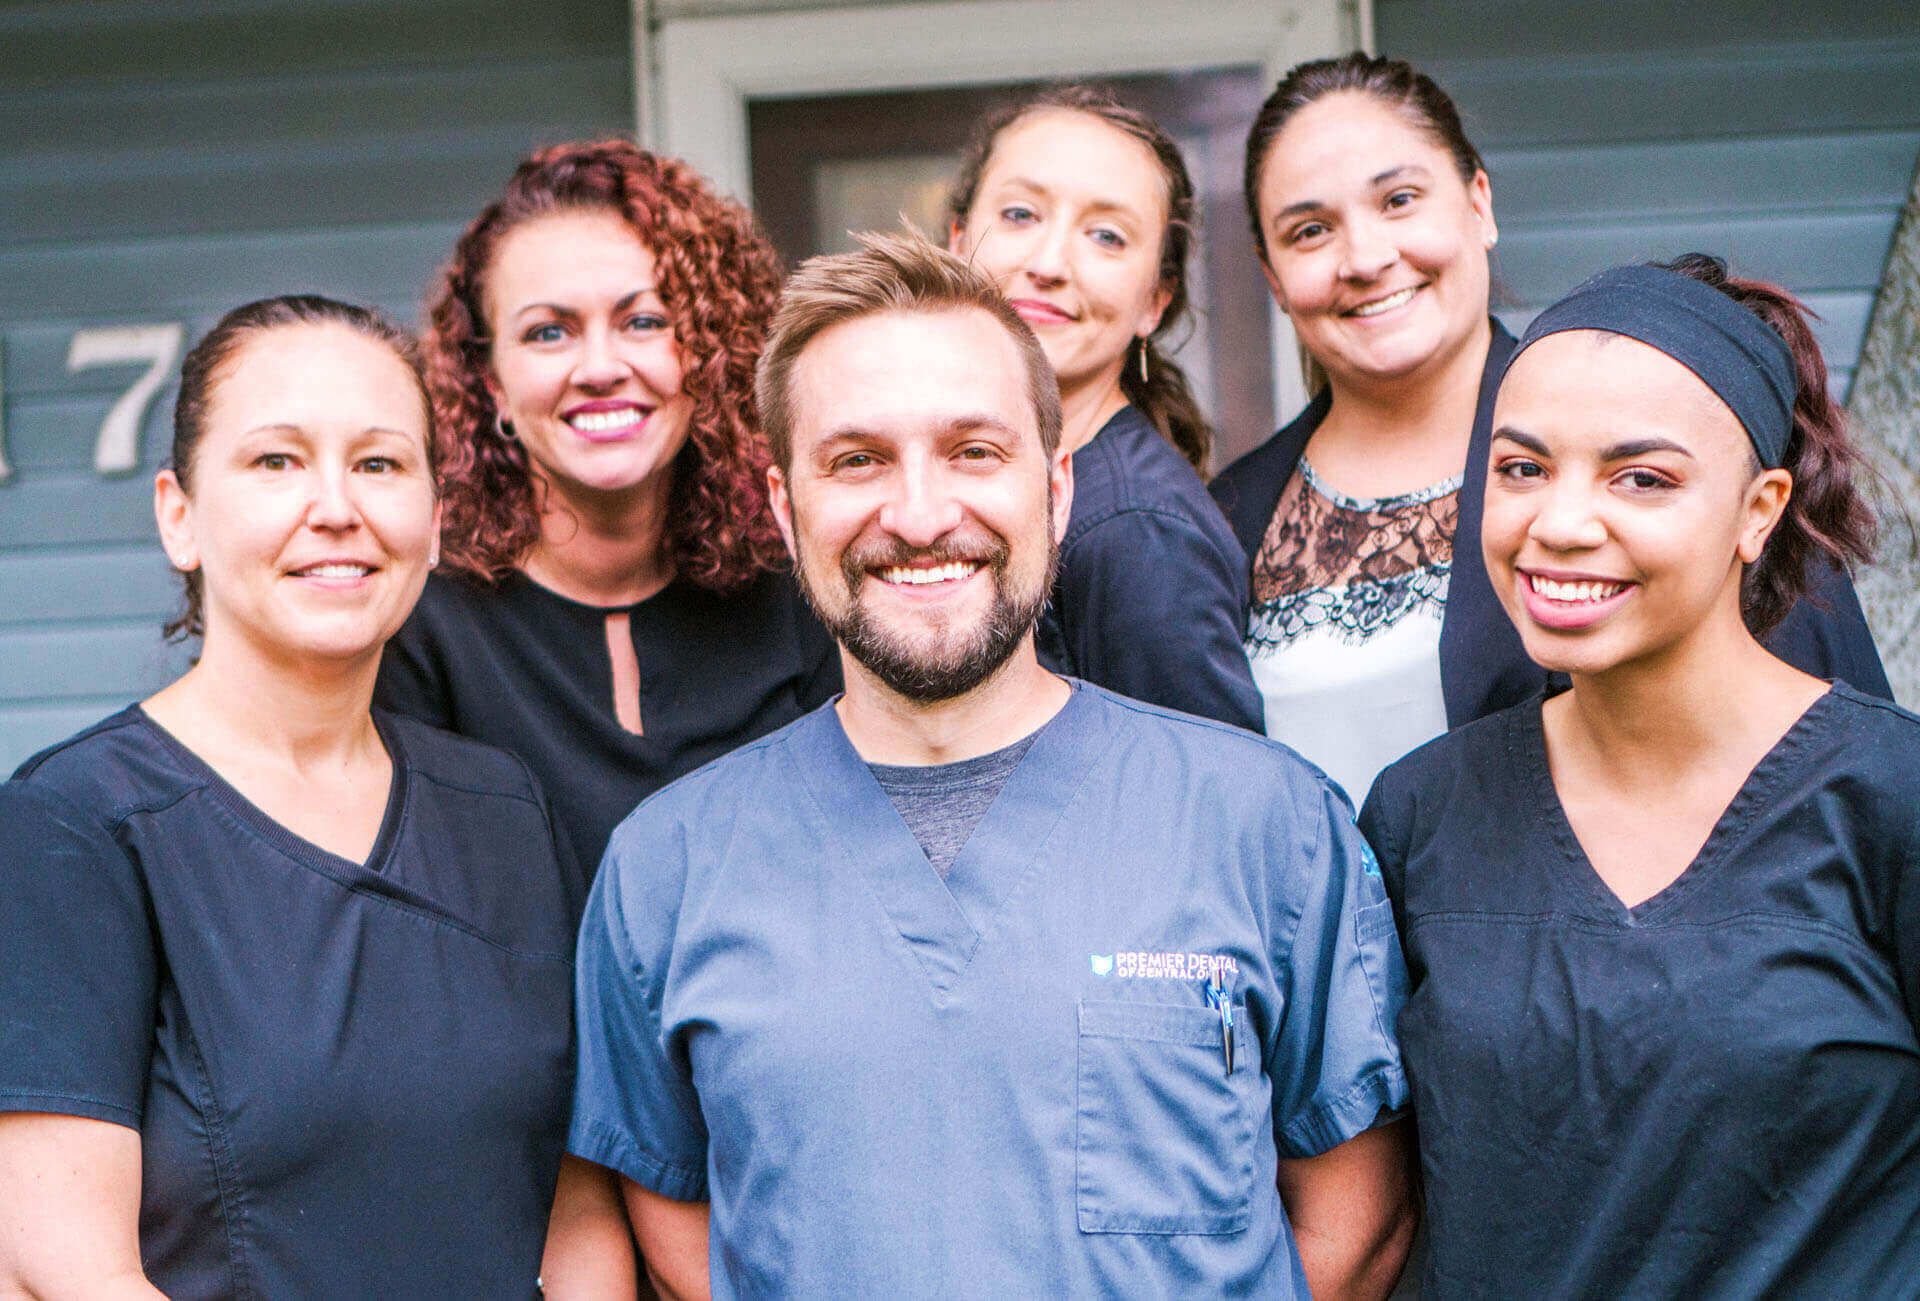 Dr. Doug and his team at Premier Dental of Johnstown welcoming patients